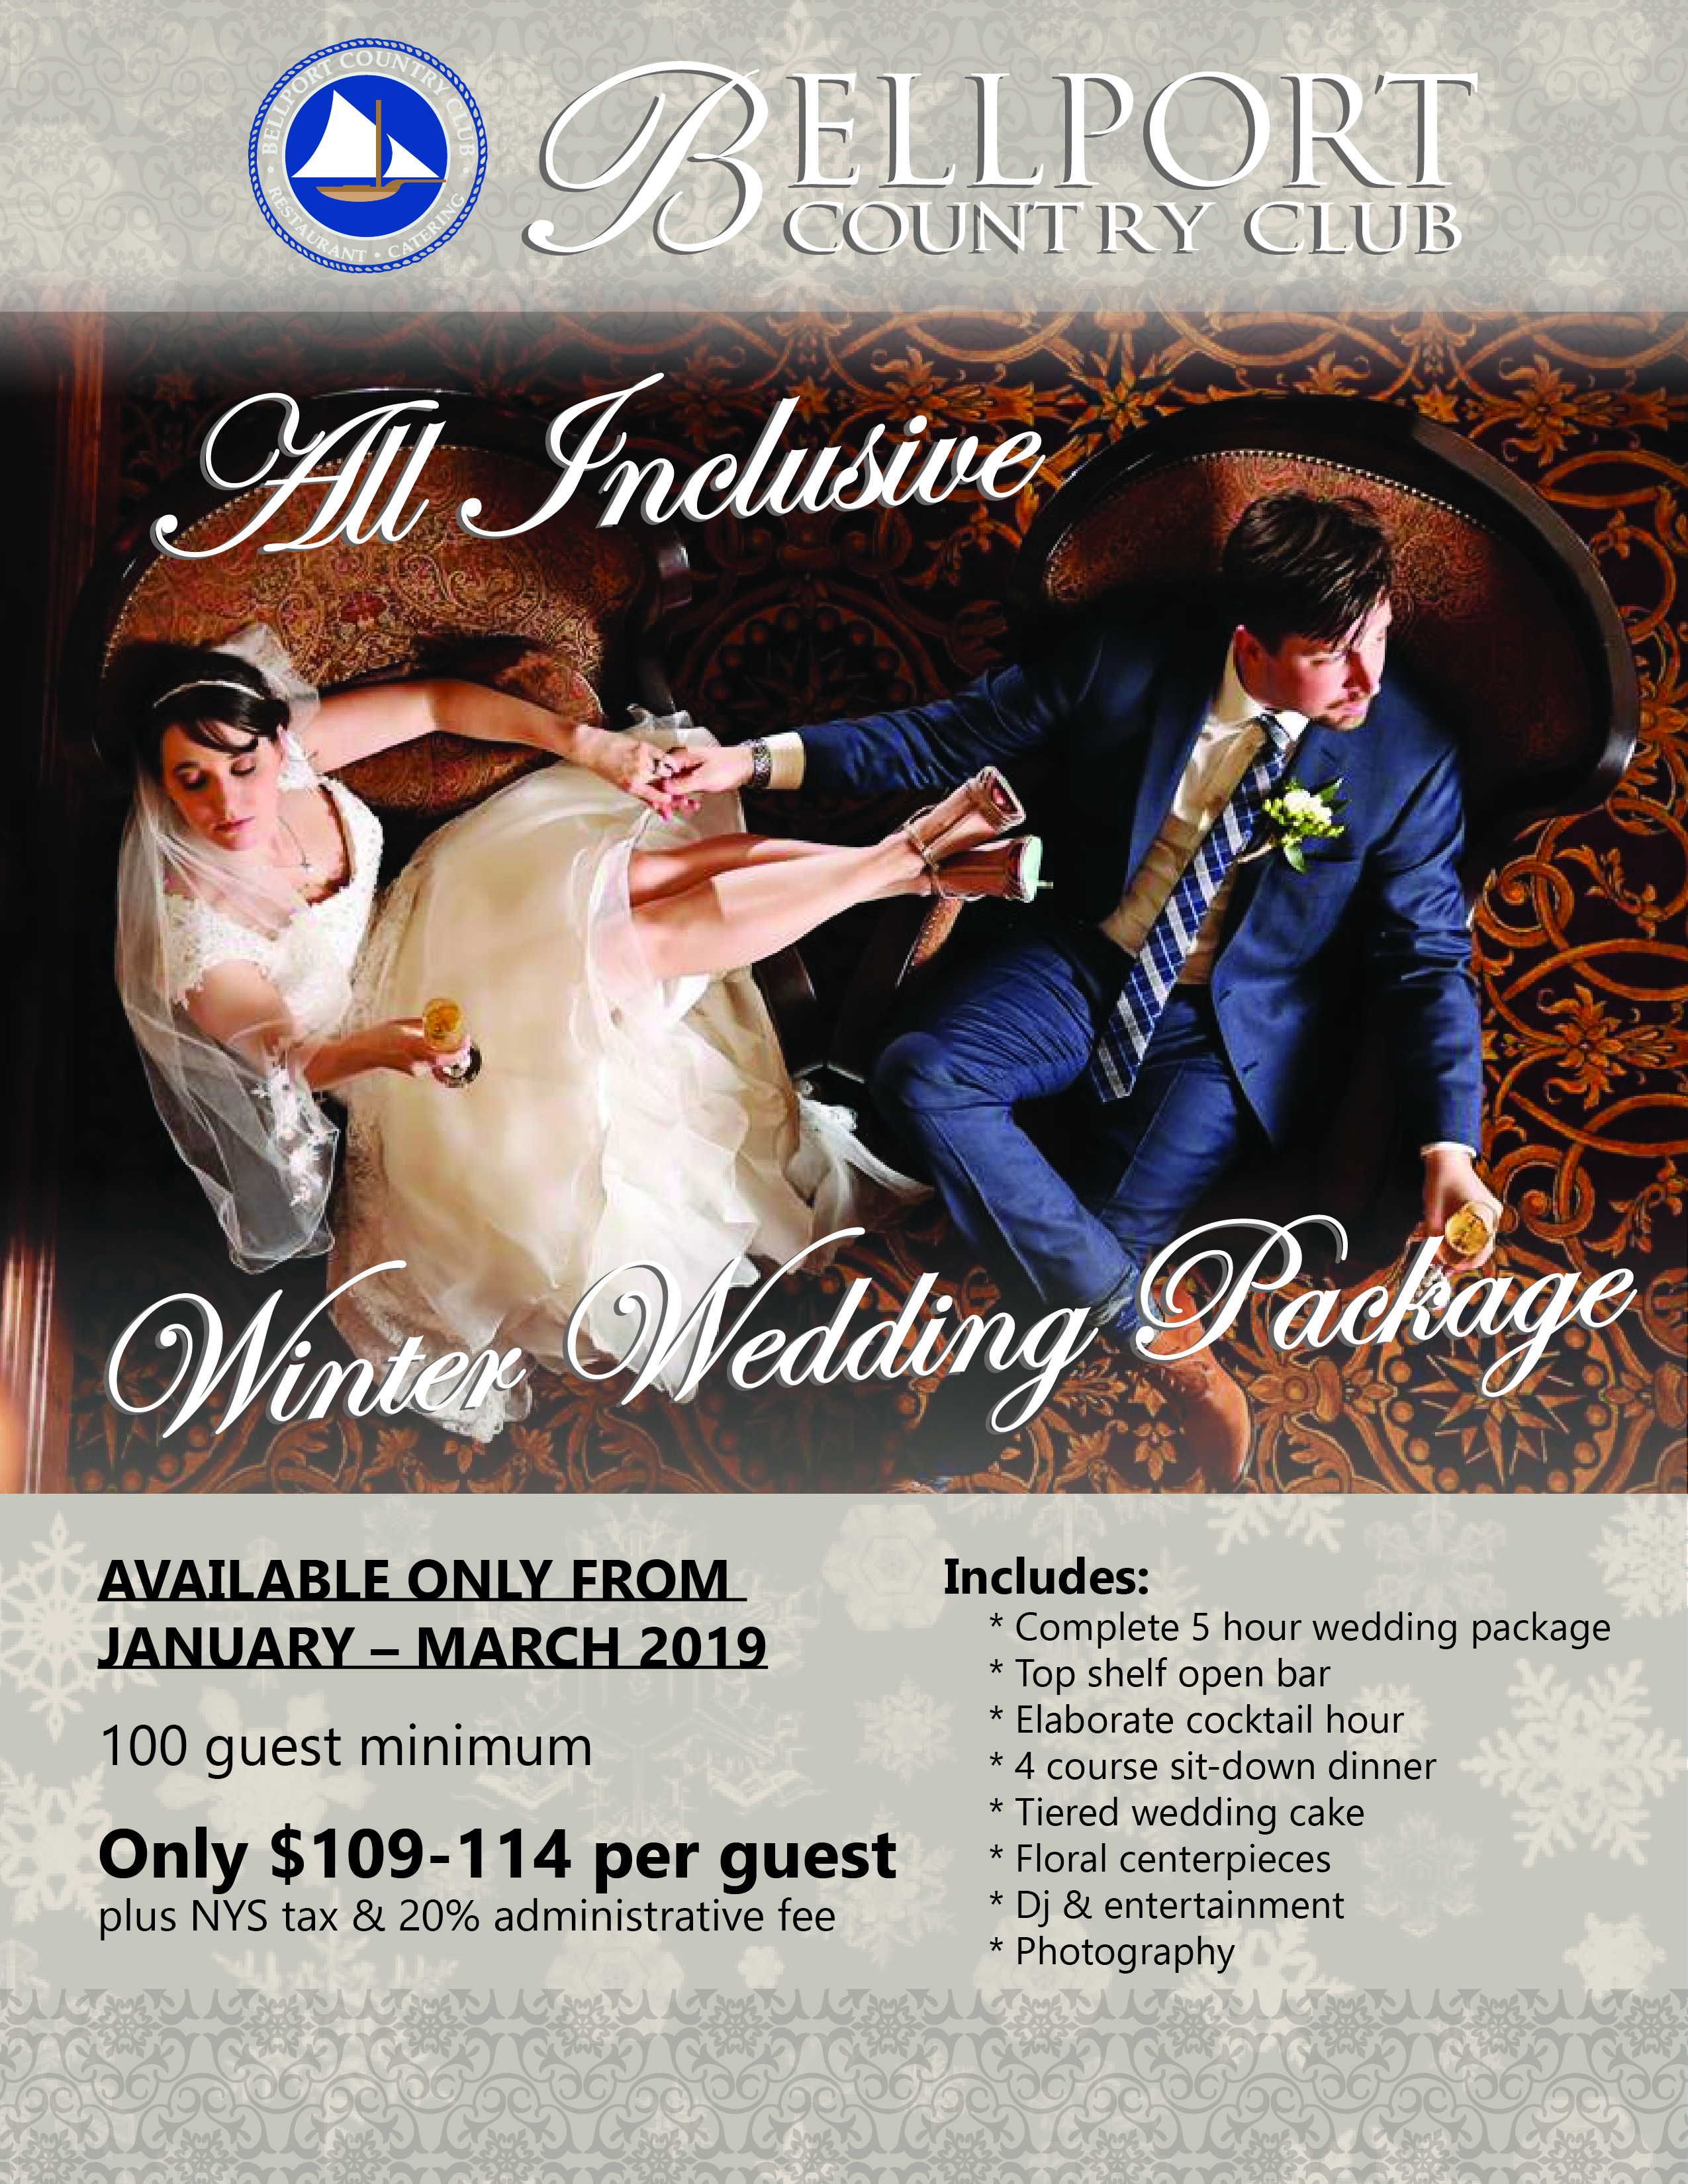 Discounts Available For Any Remaining 2018 Wedding Dates